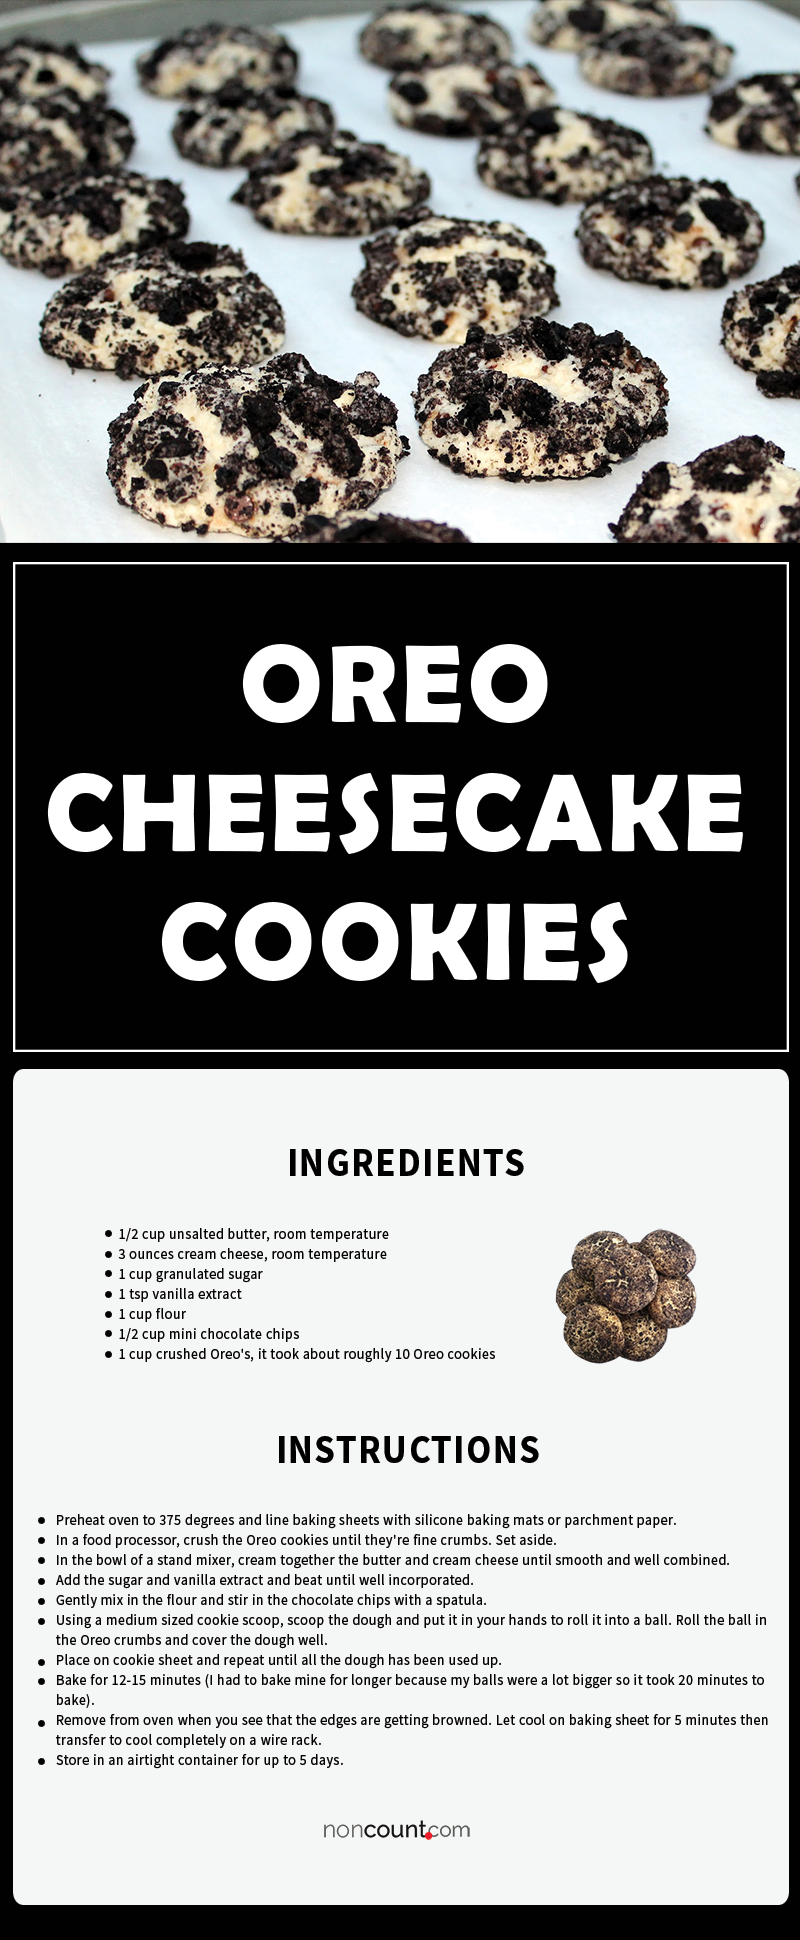 Oreo Cheesecake Cookies Image of detail recipe